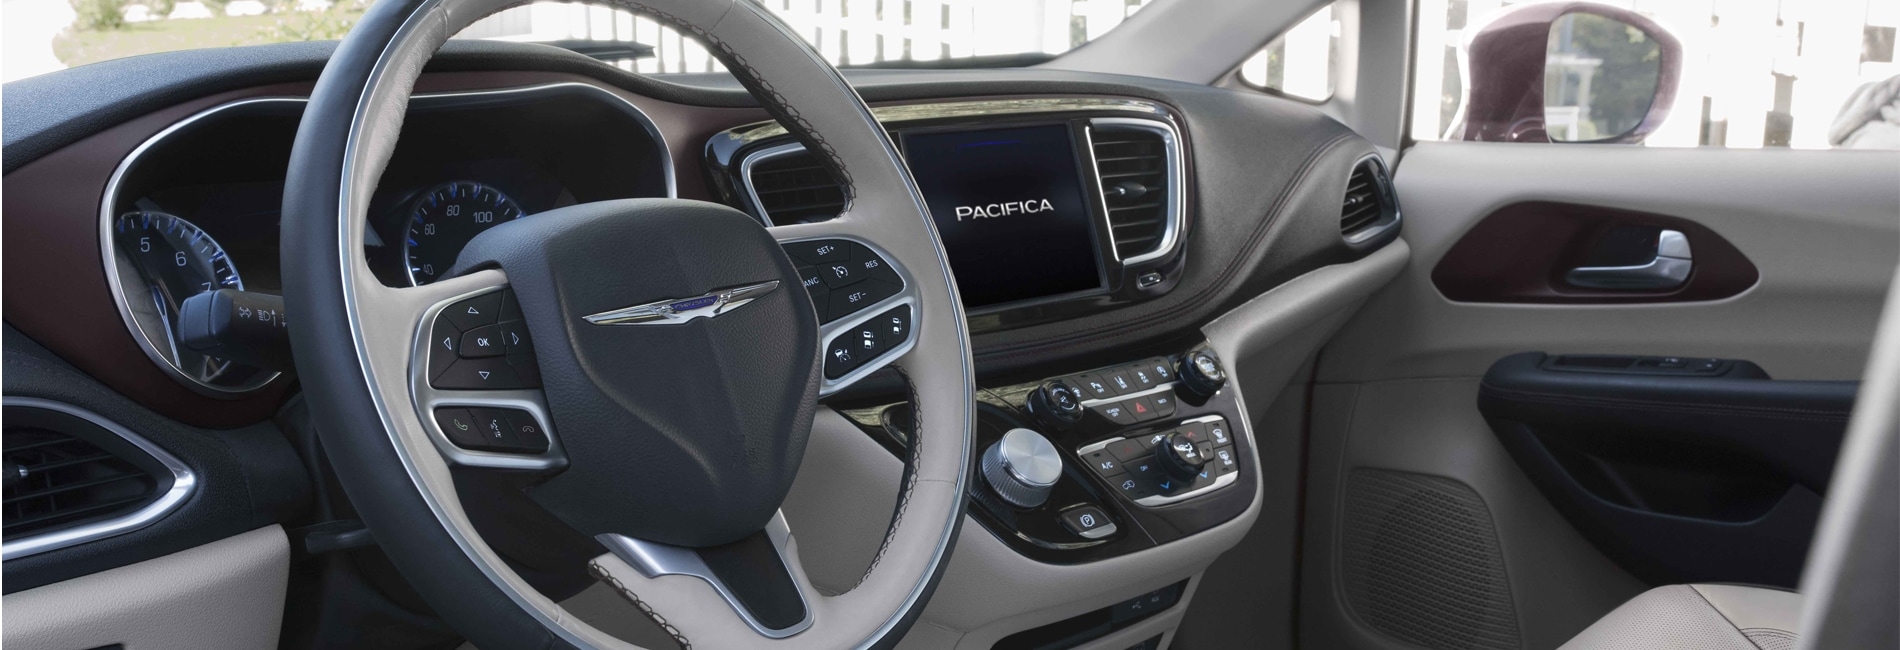 Chrysler Pacifica Interior Vehicle Features